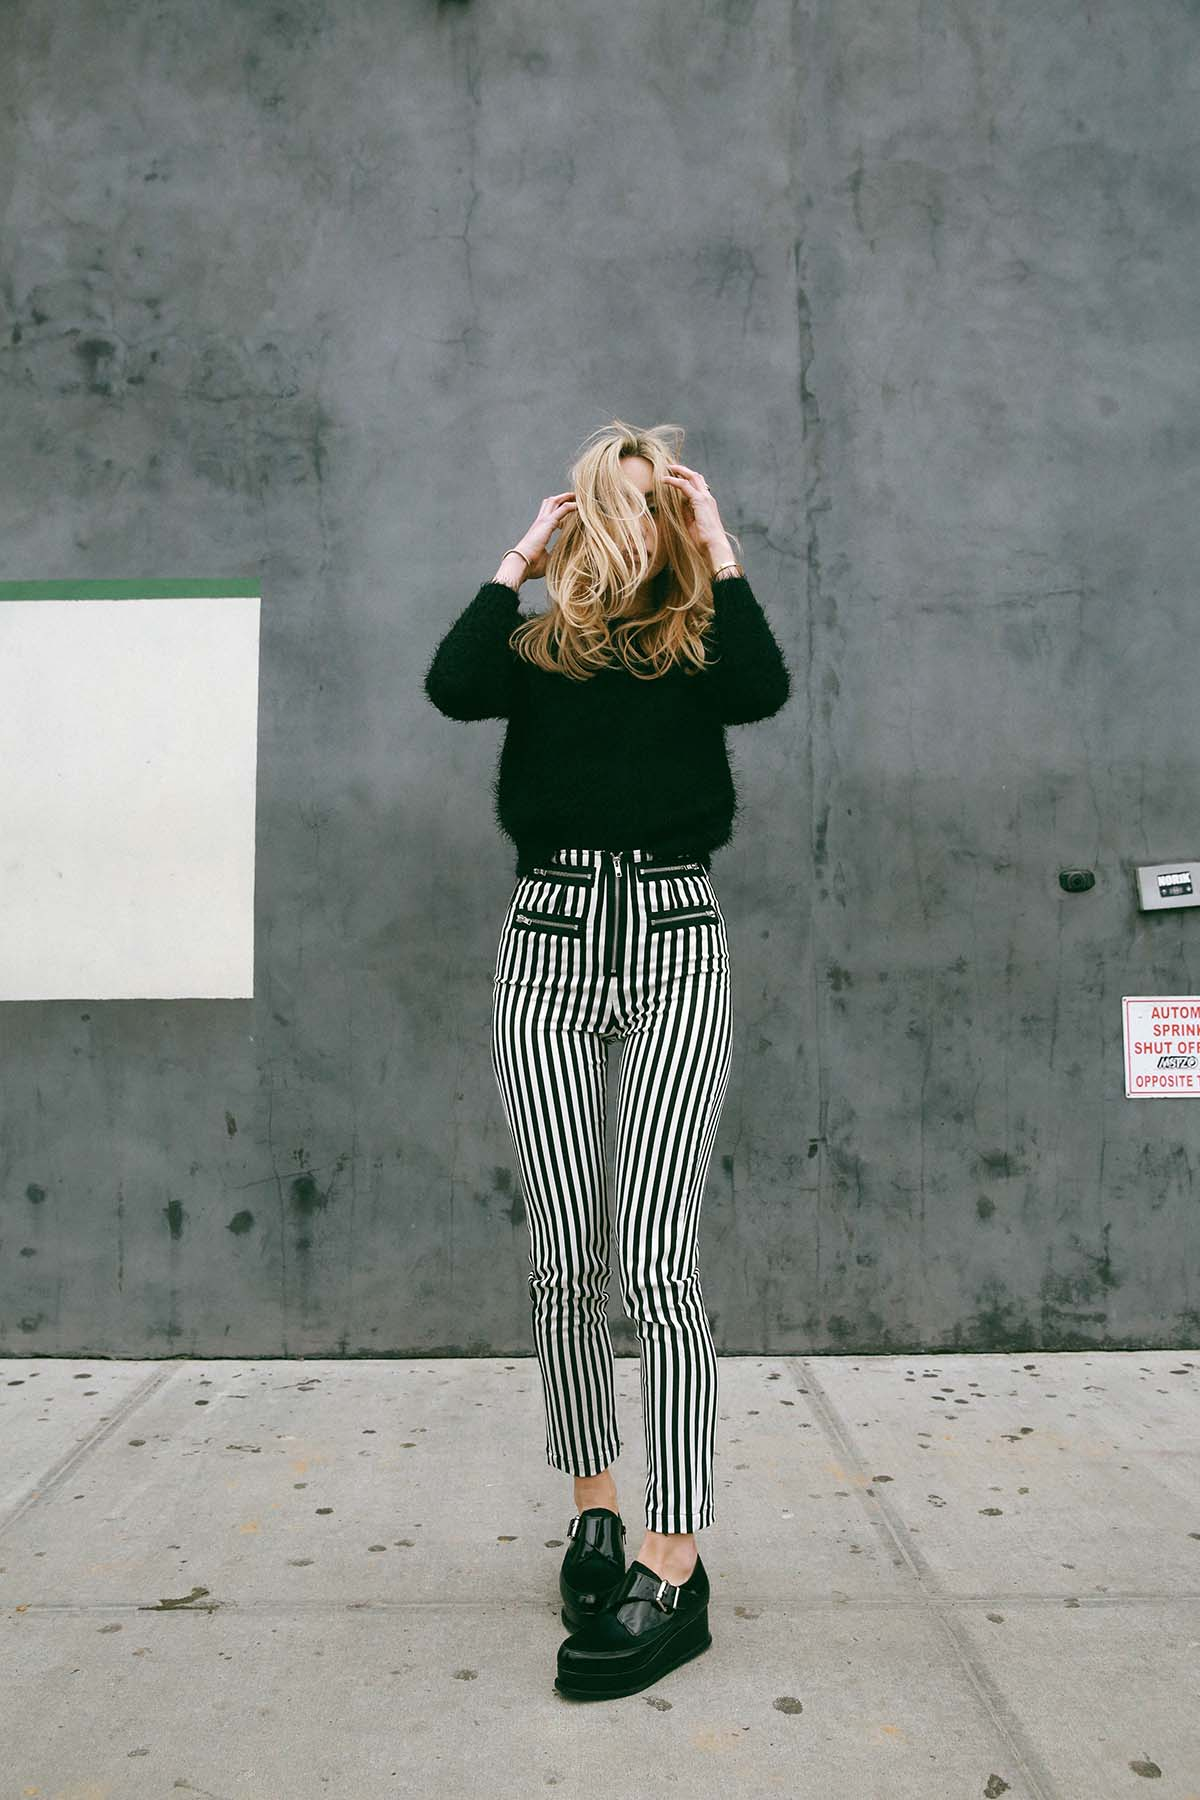 Ana Prodanovich wearing vertical striped pants from Reformation.